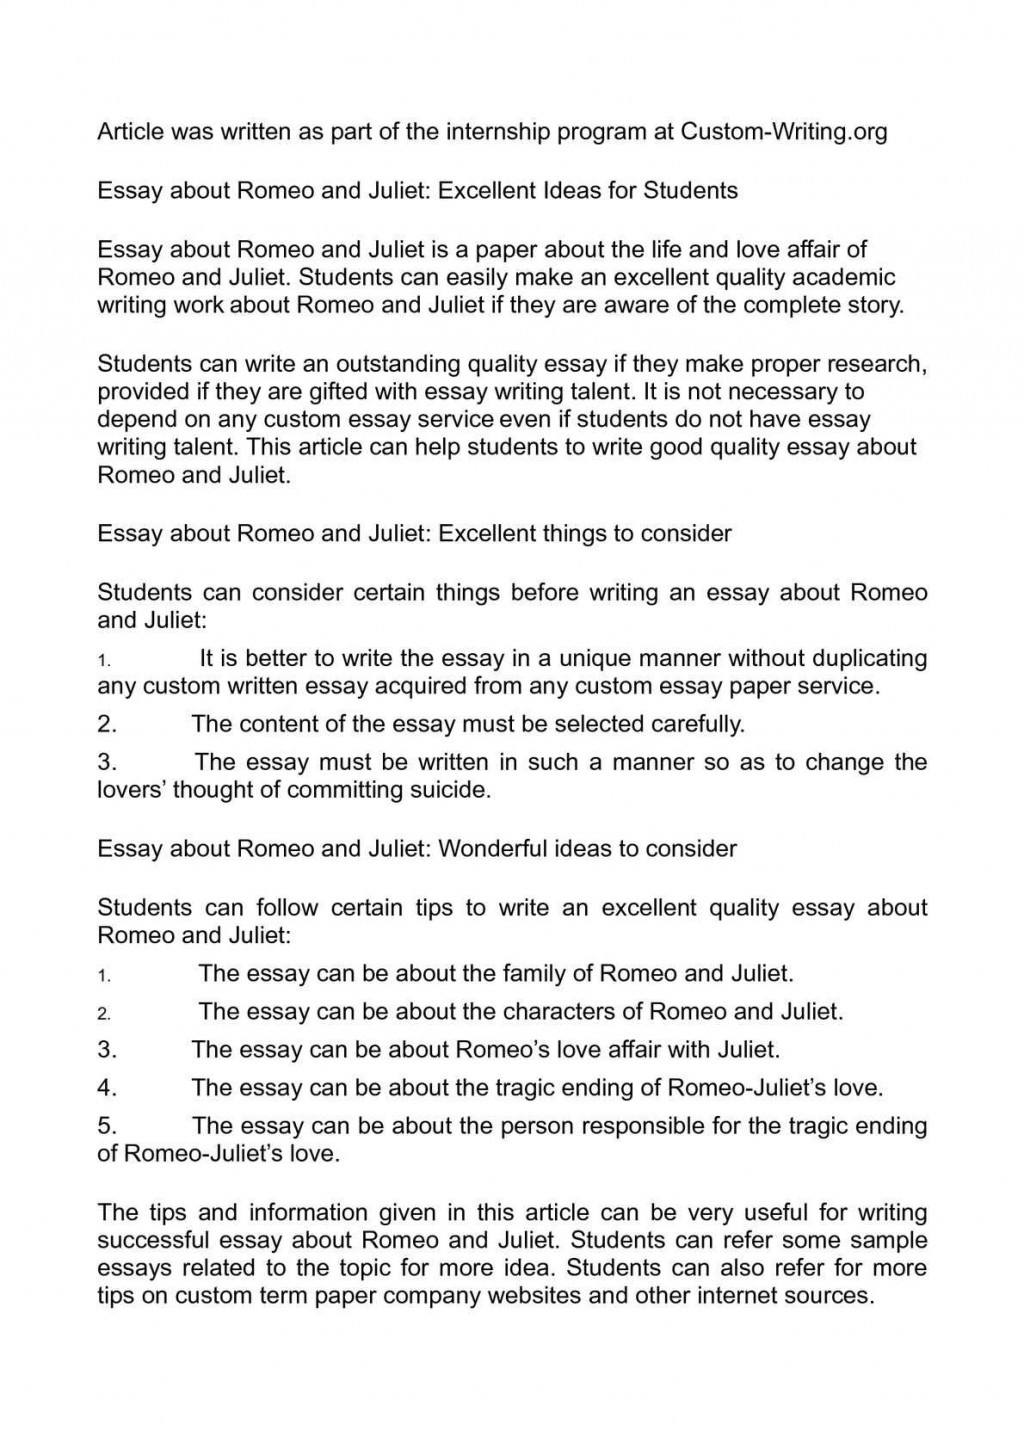 009 Surprising Romeo And Juliet Essay Photo  Who I Responsible For Juliet' Death Introduction Hook Question PdfLarge